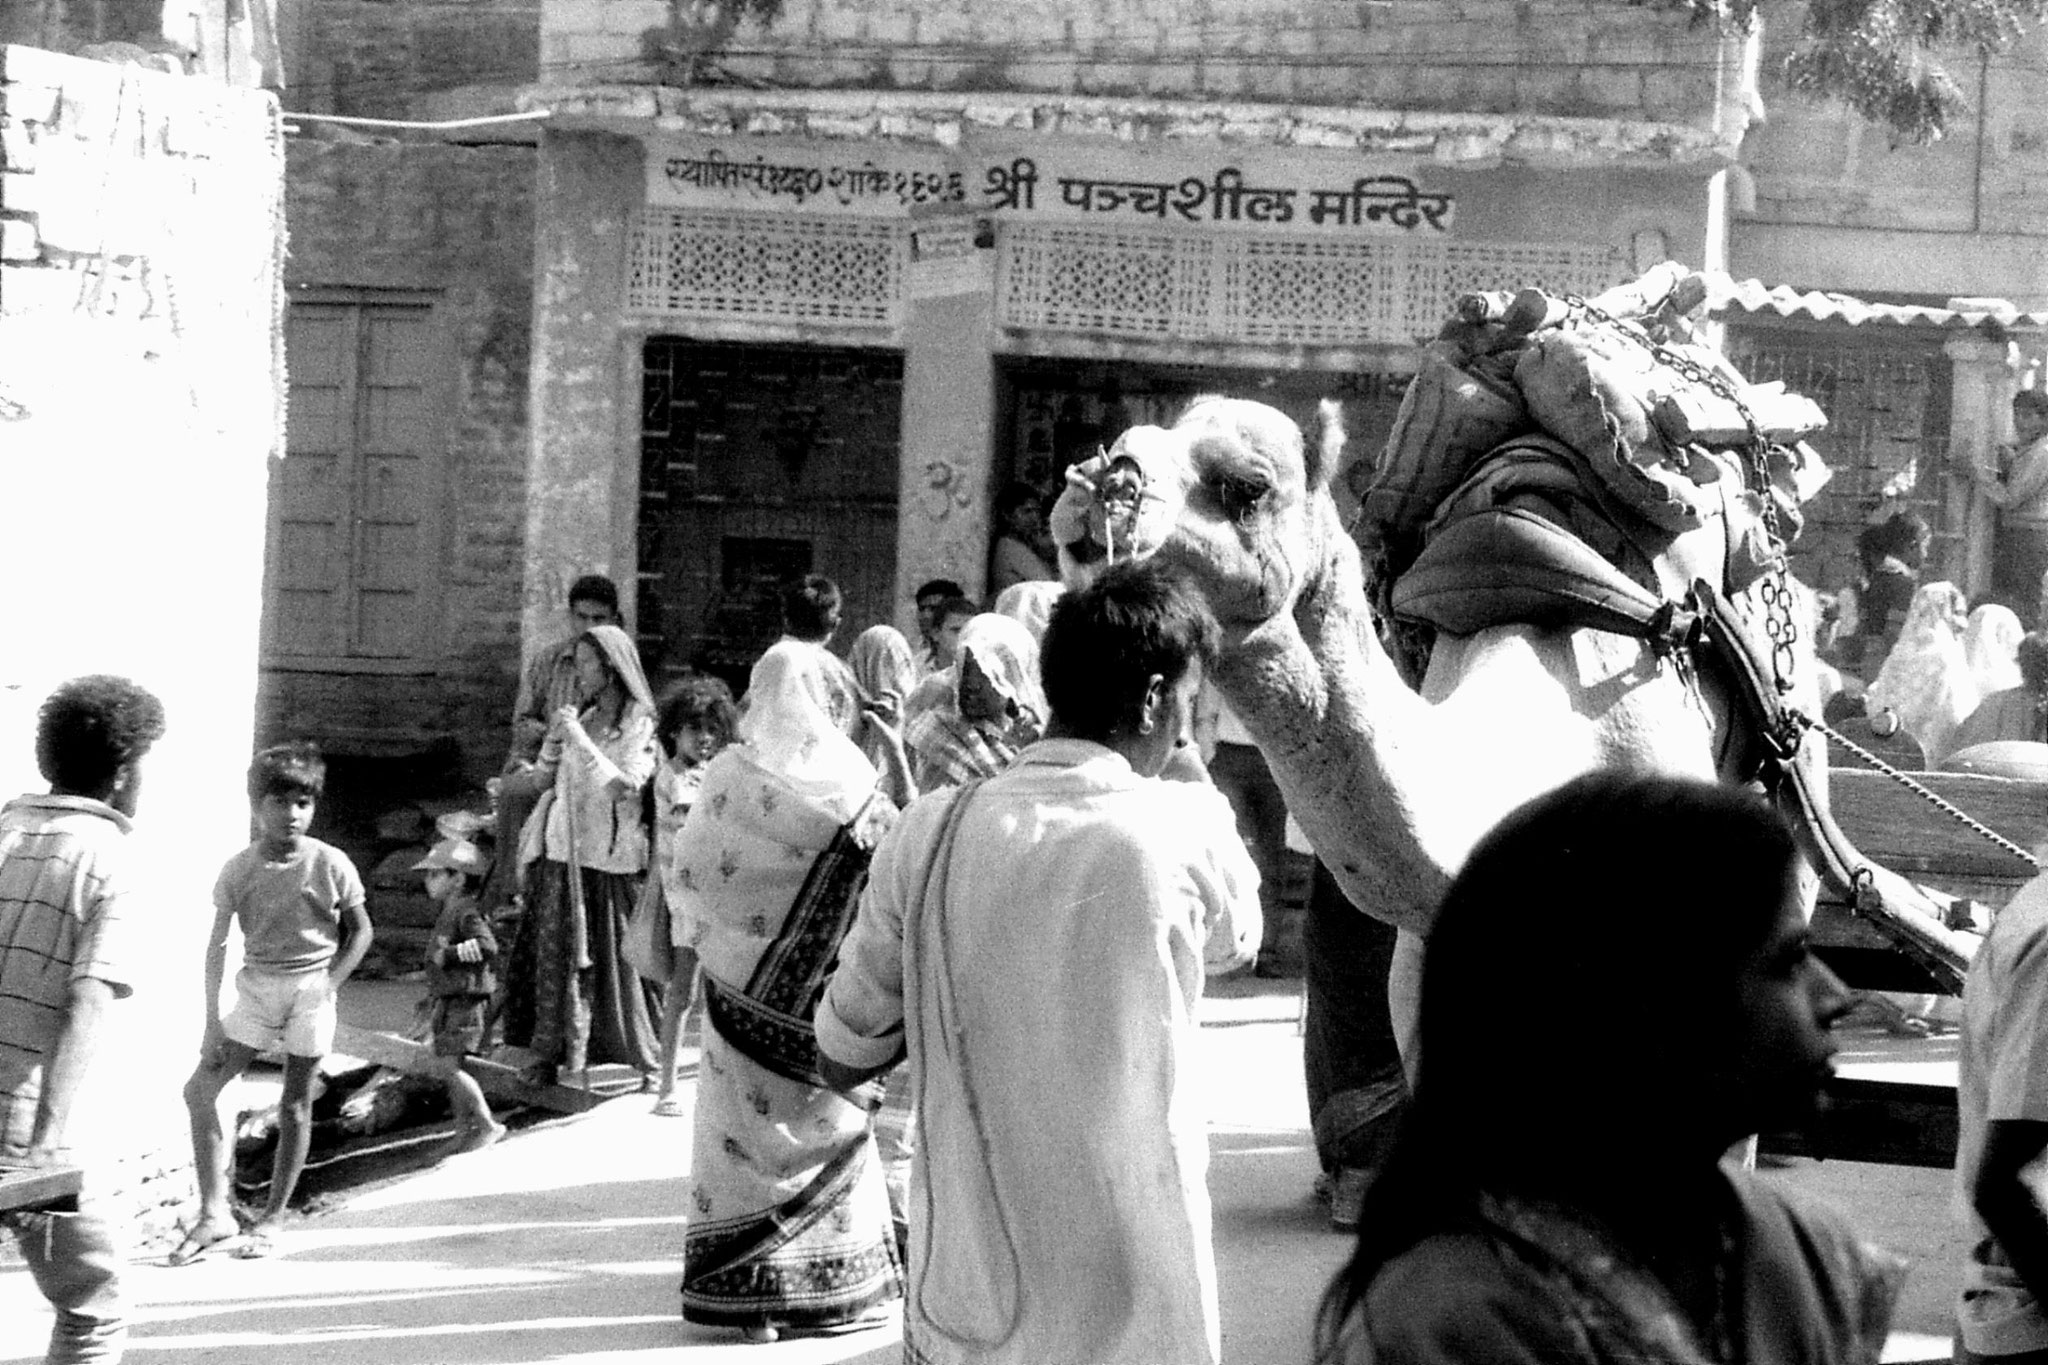 3/12/1989: 34: Jaisalmer camel and wedding procession